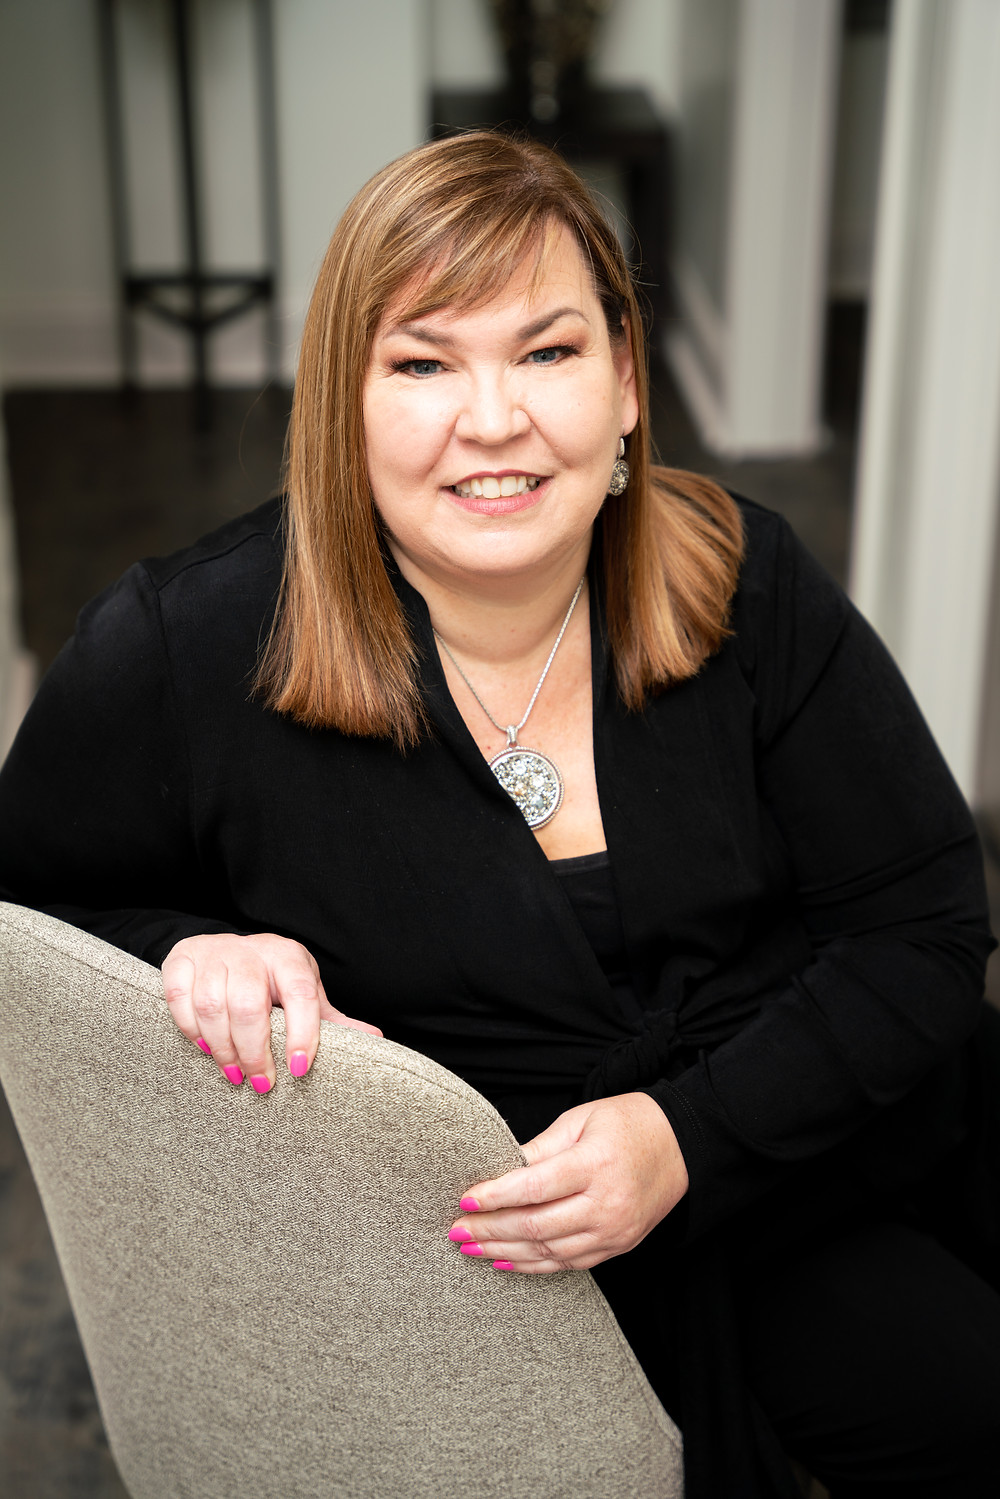 Beth Caldwell helps women succeed in life and business